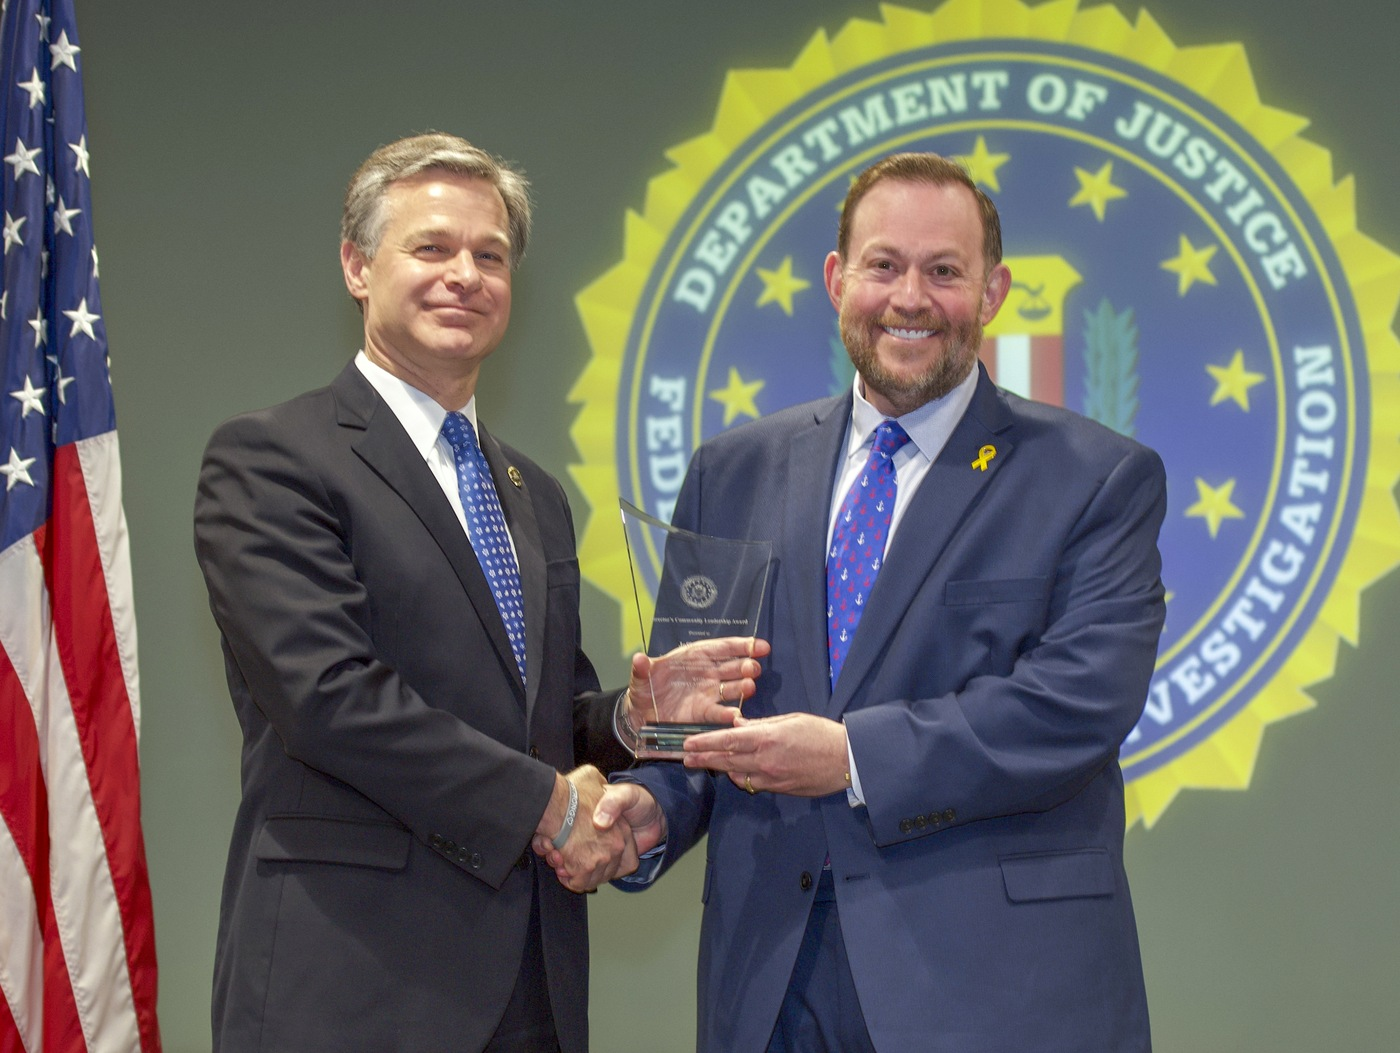 FBI Director Christopher Wray presents Richmond Division recipient Jeffrey Katz with the Director's Community Leadership Award (DCLA) at a ceremony at FBI Headquarters on May 3, 2019.